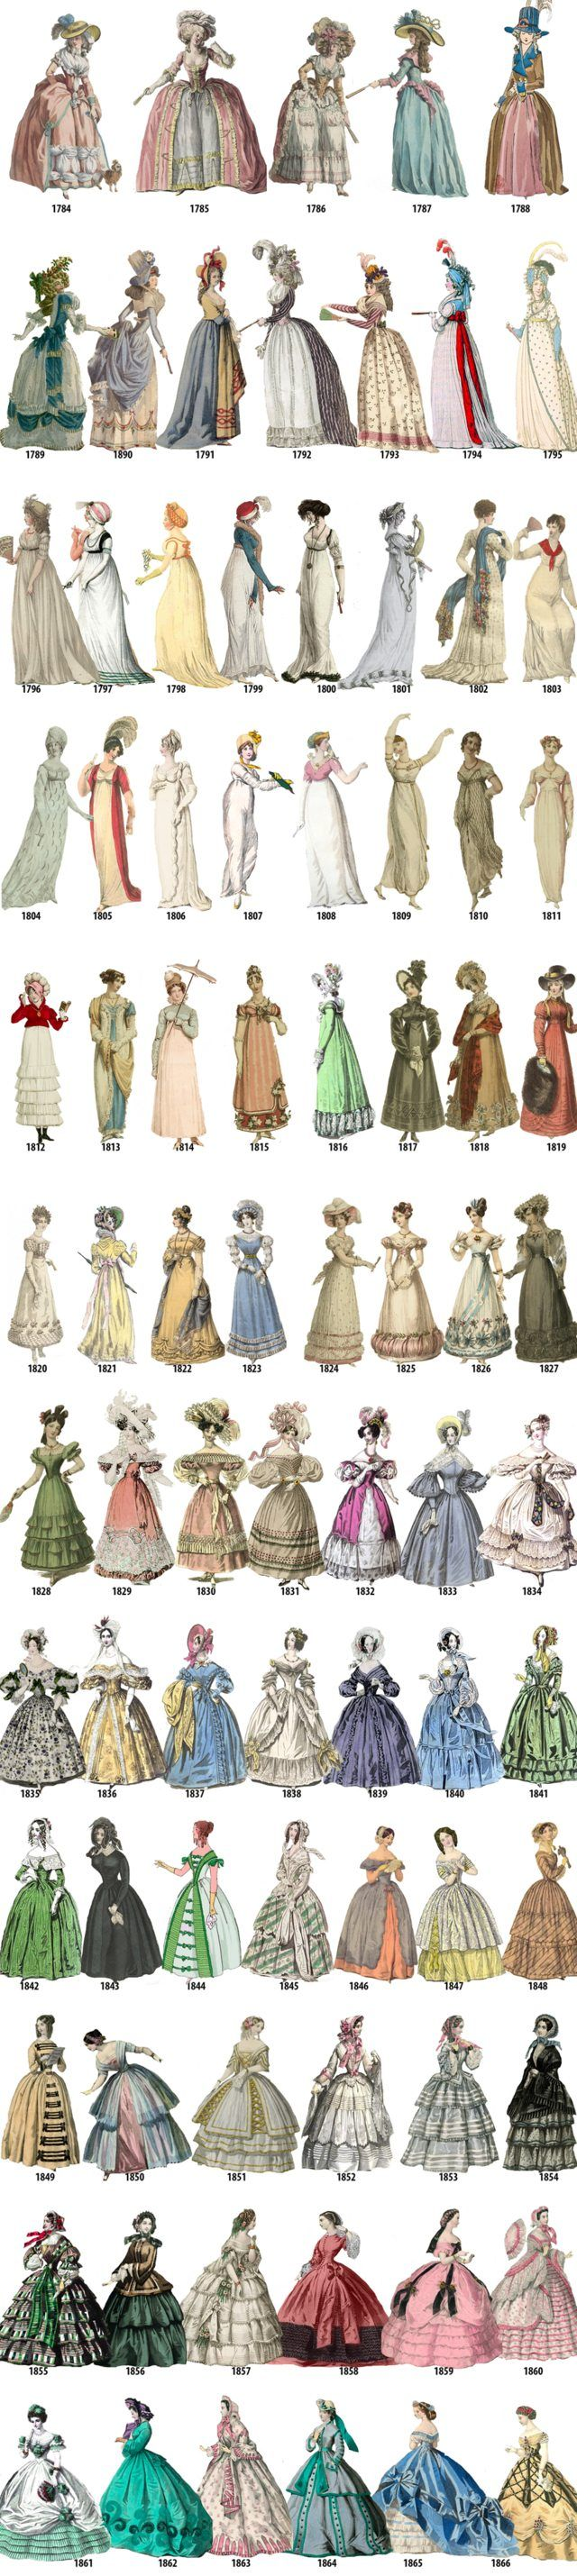 Women's fashion in every year from 1784-1970 - Imgur